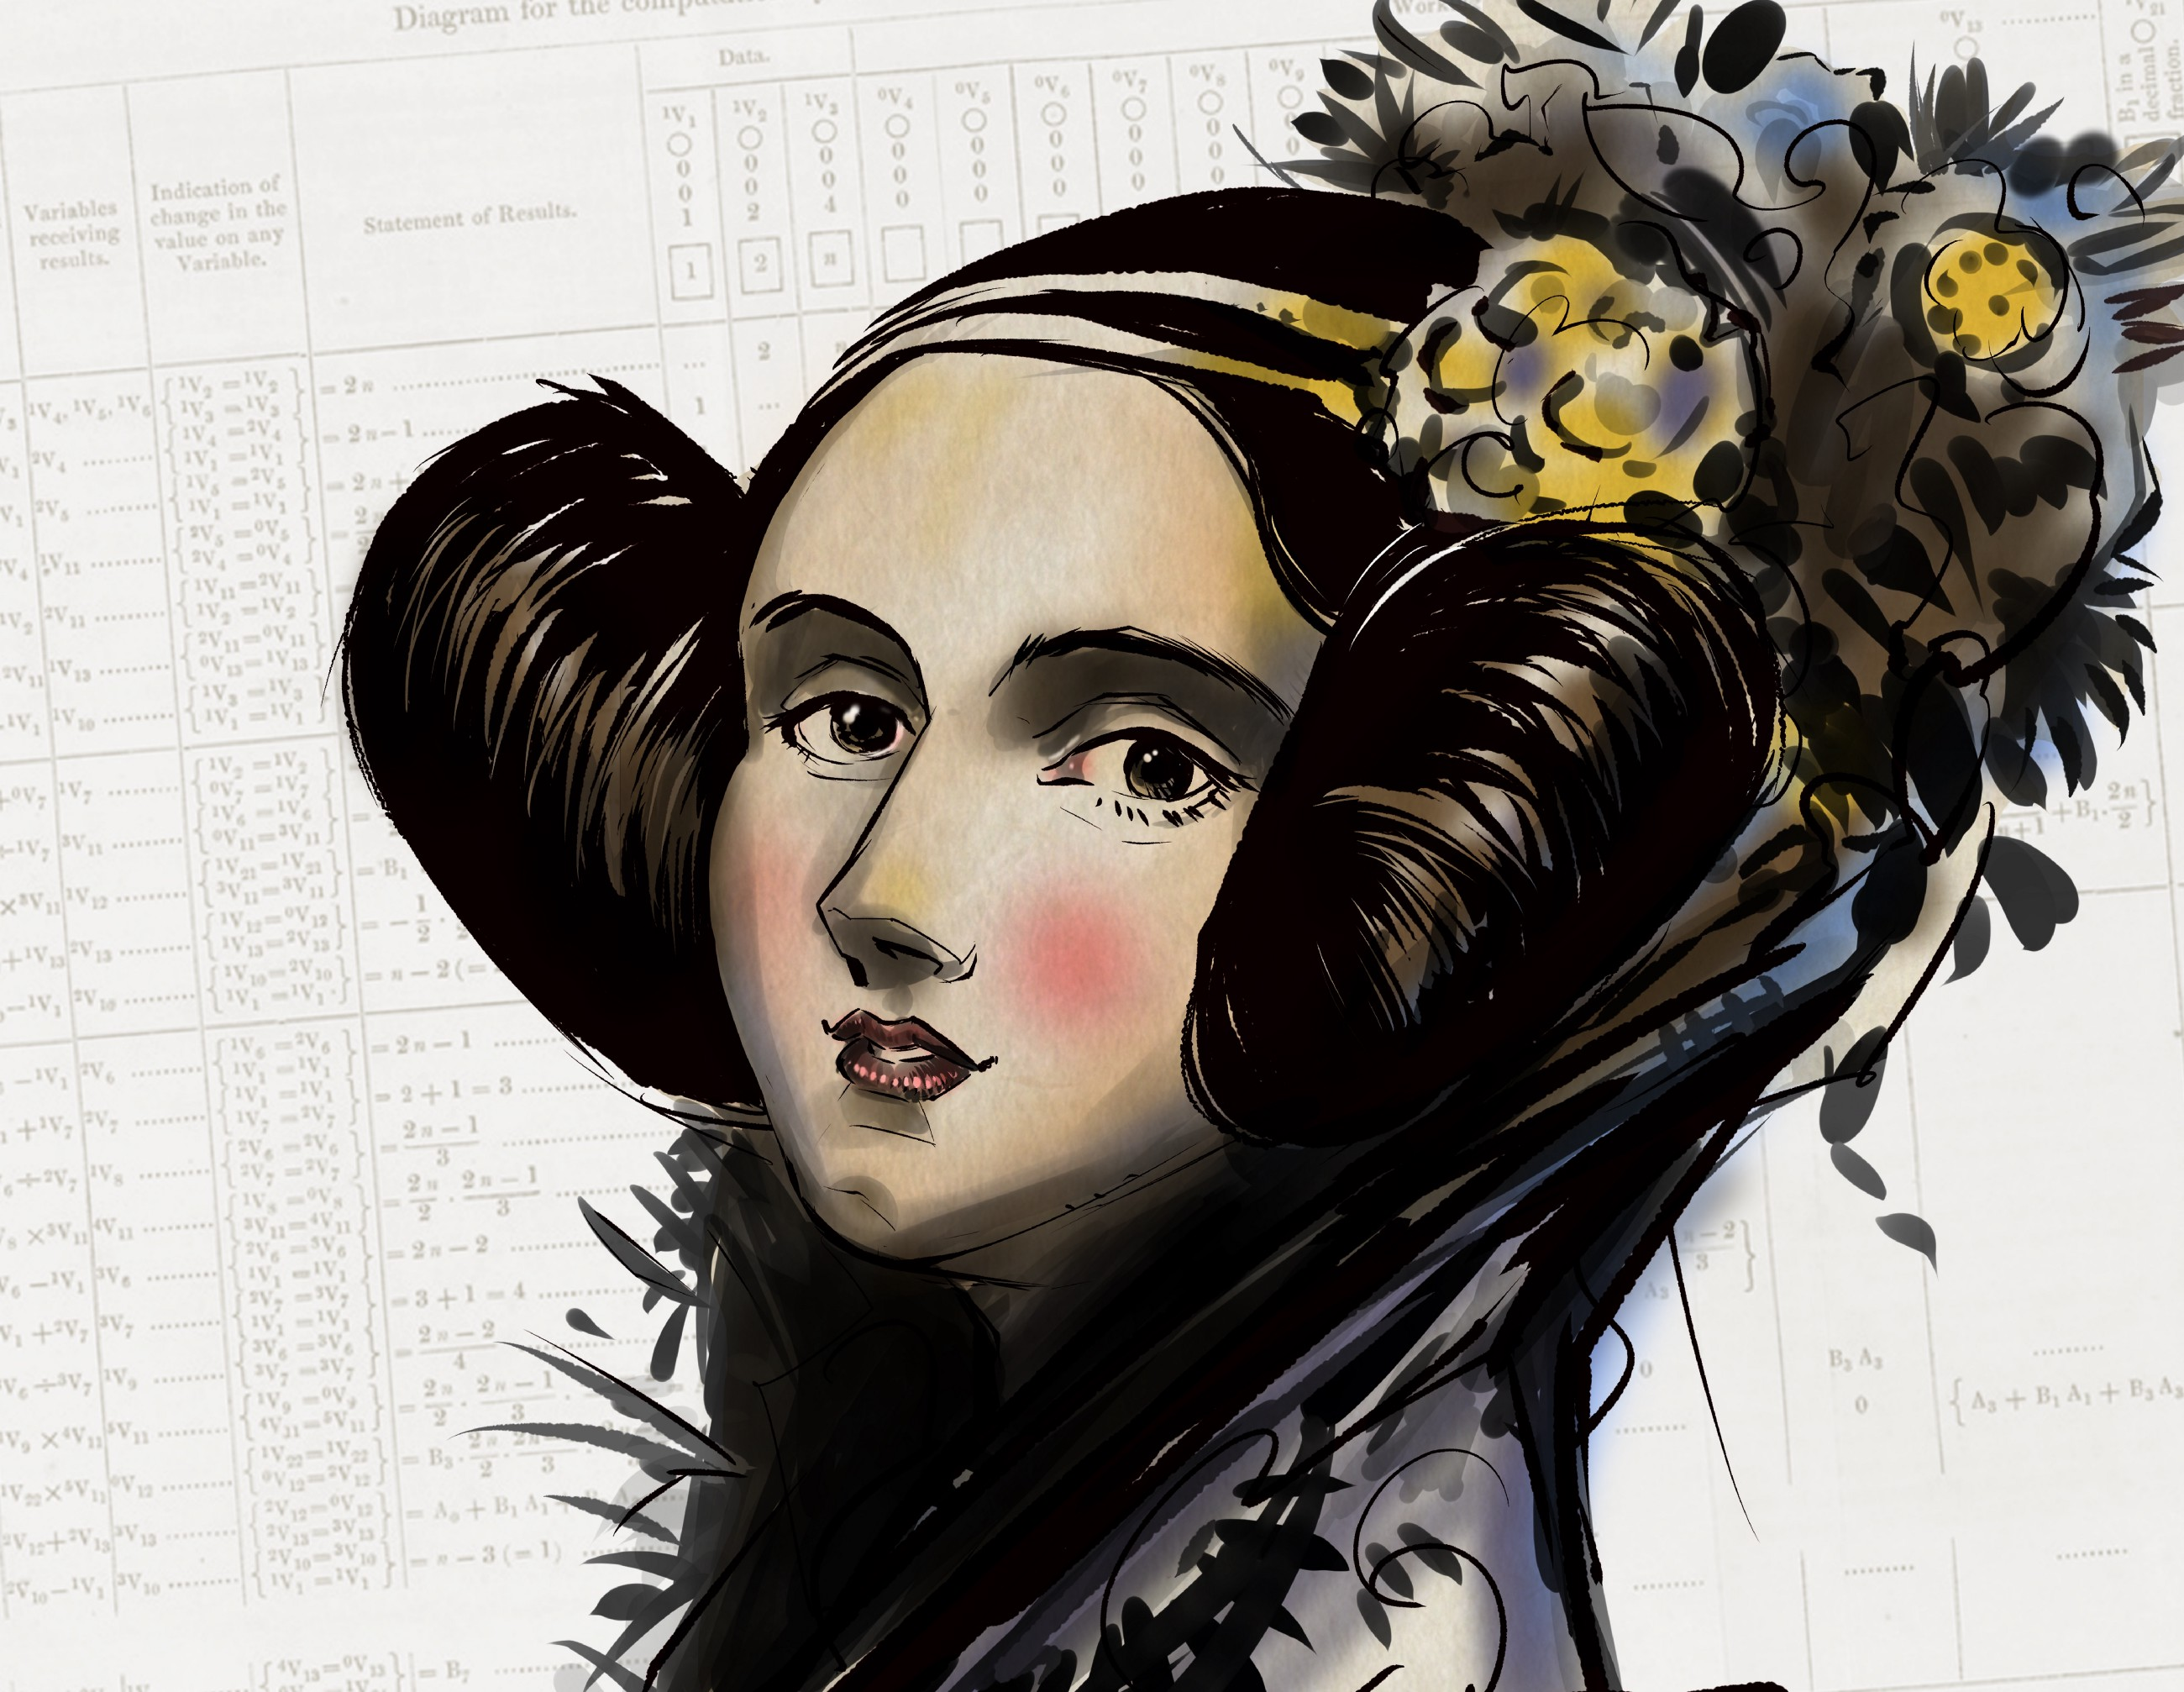 Ada Lovelace by @SebastianNavasF